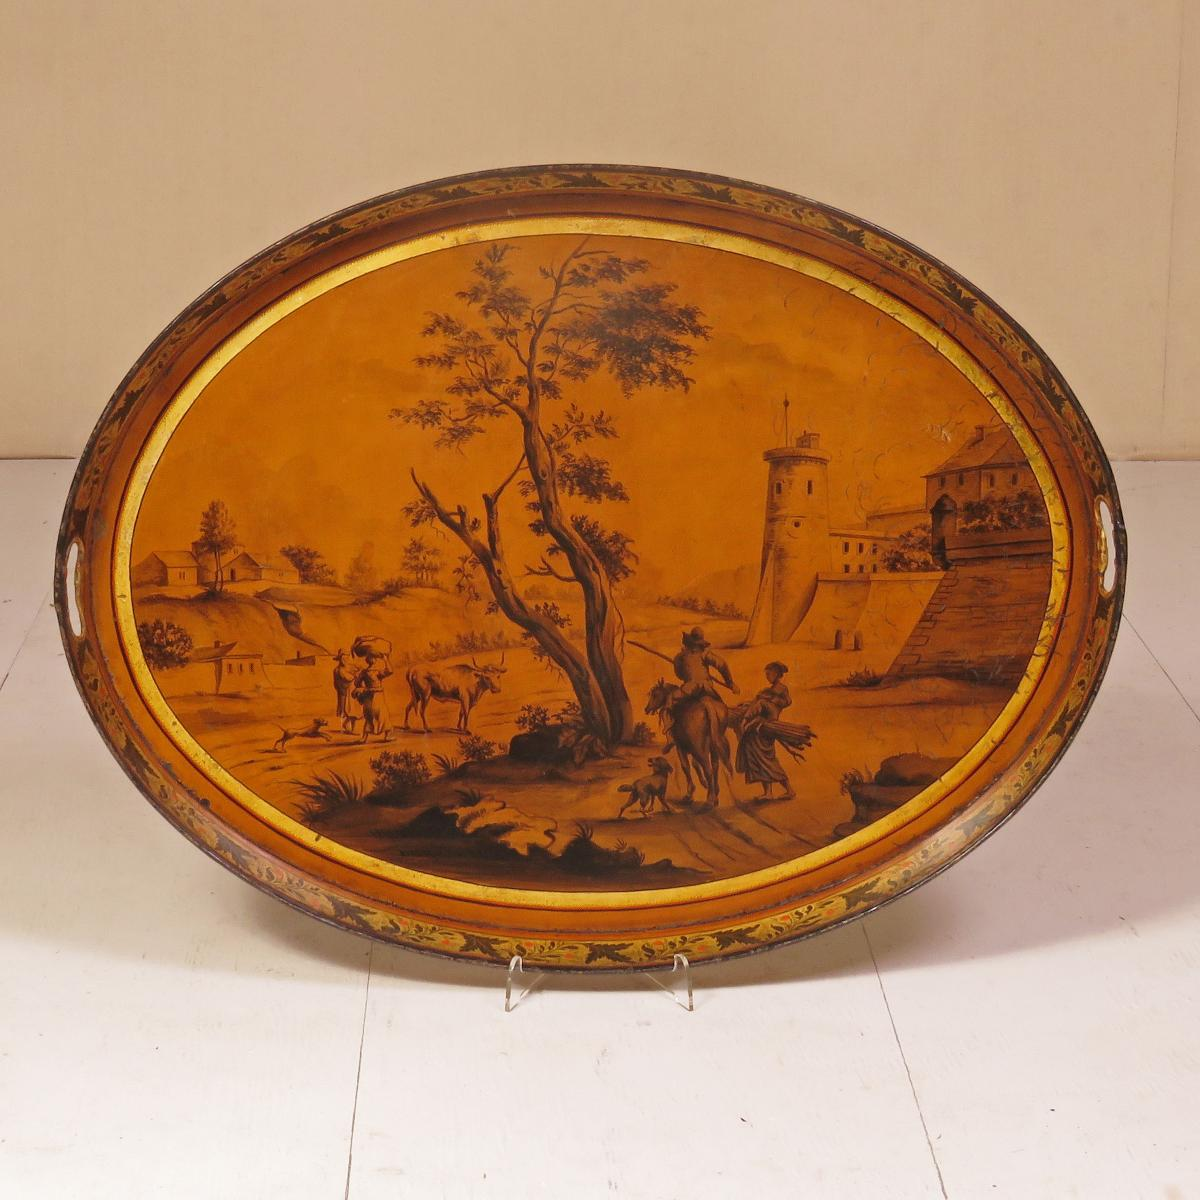 An Early 19th Century Painted Toleware Tray